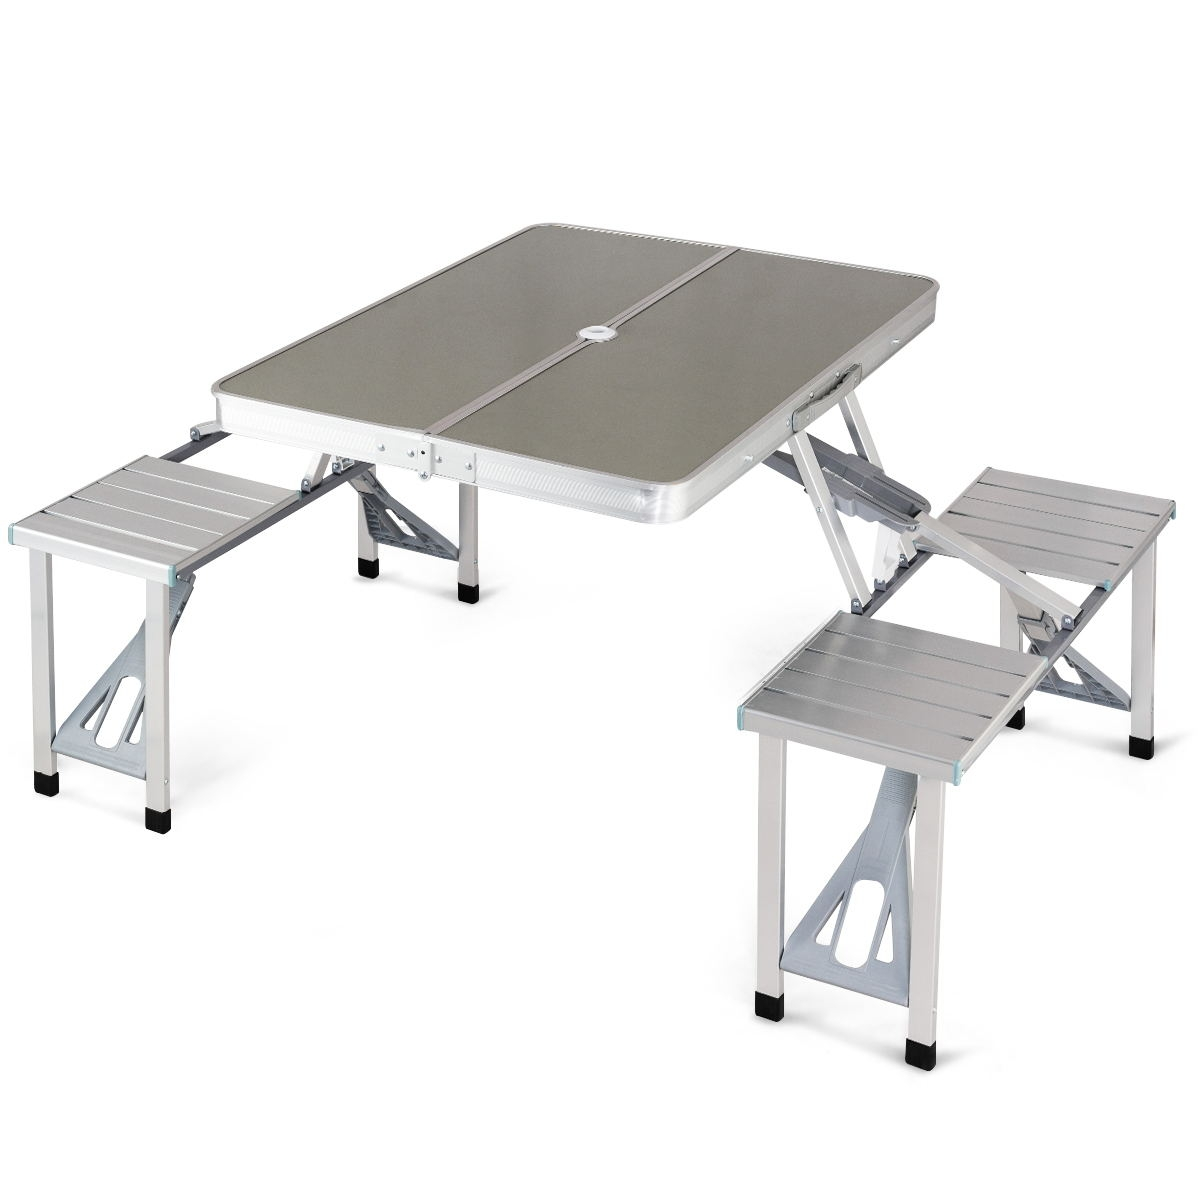 Aluminum Portable Folding Picnic Table with 4 Seats